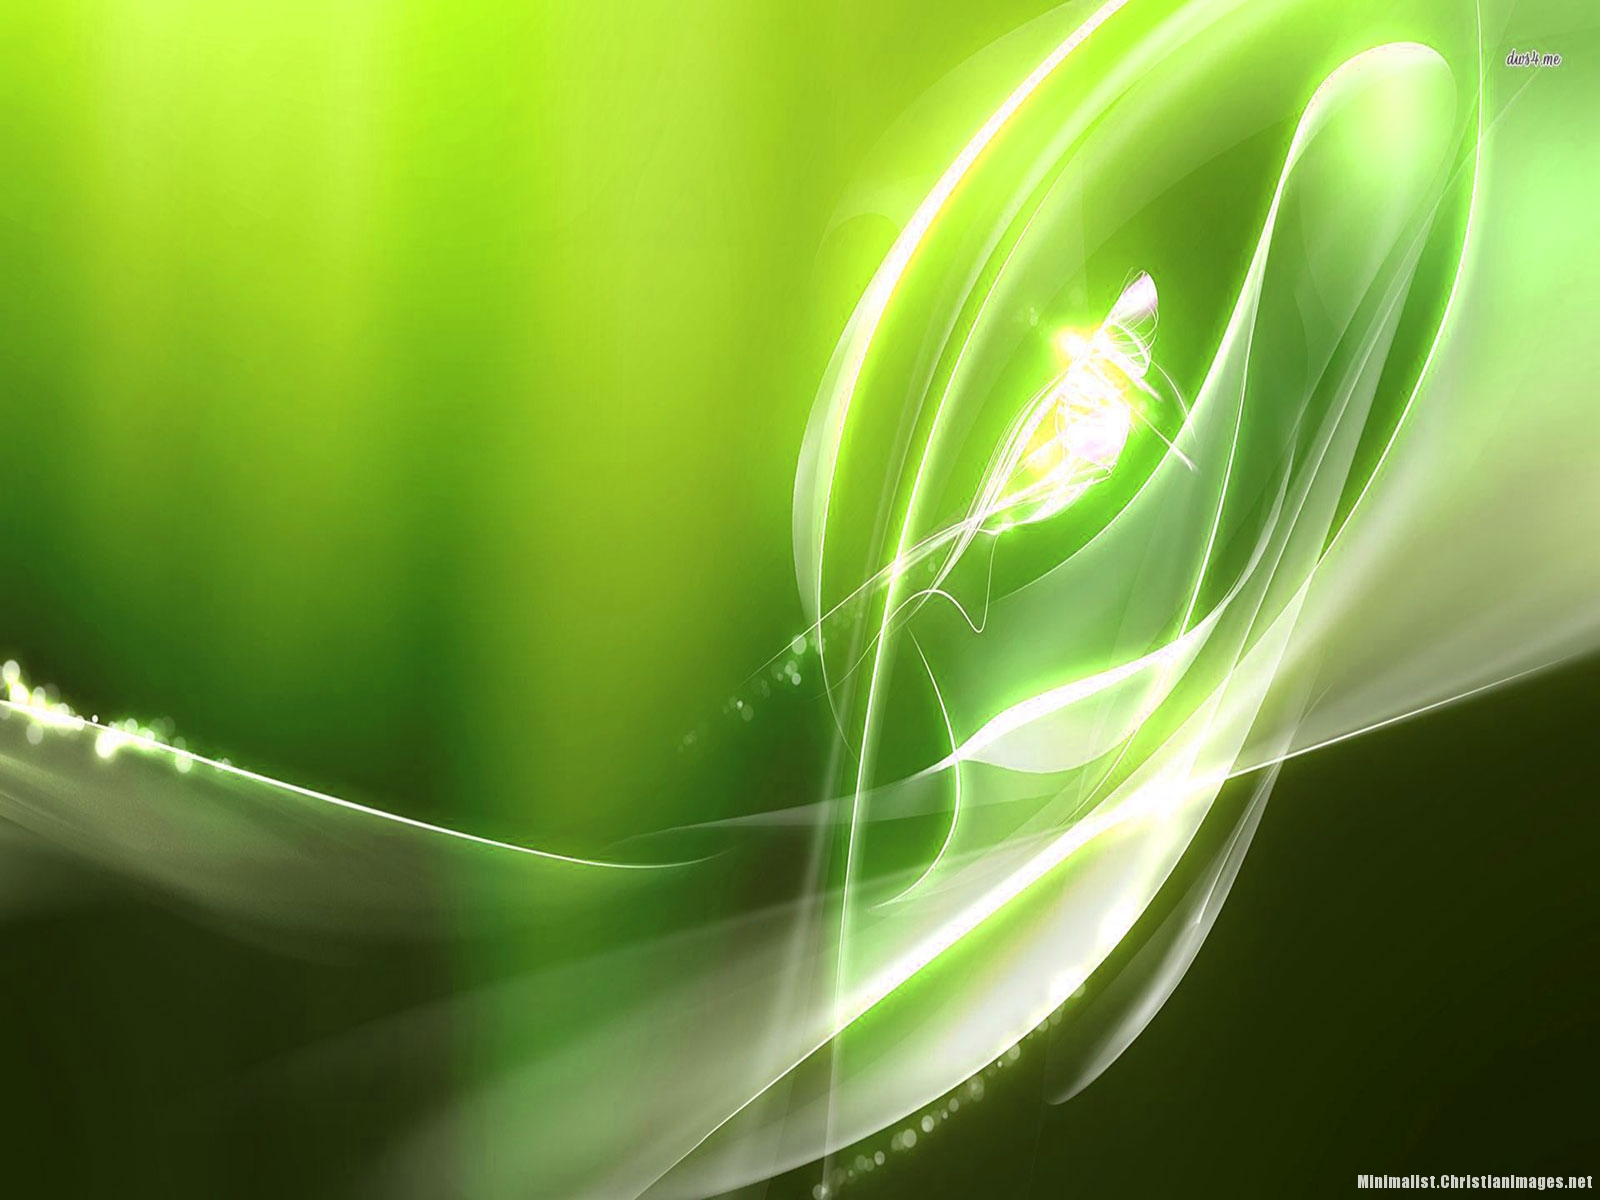 Green Light Abstract Powerpoint Background